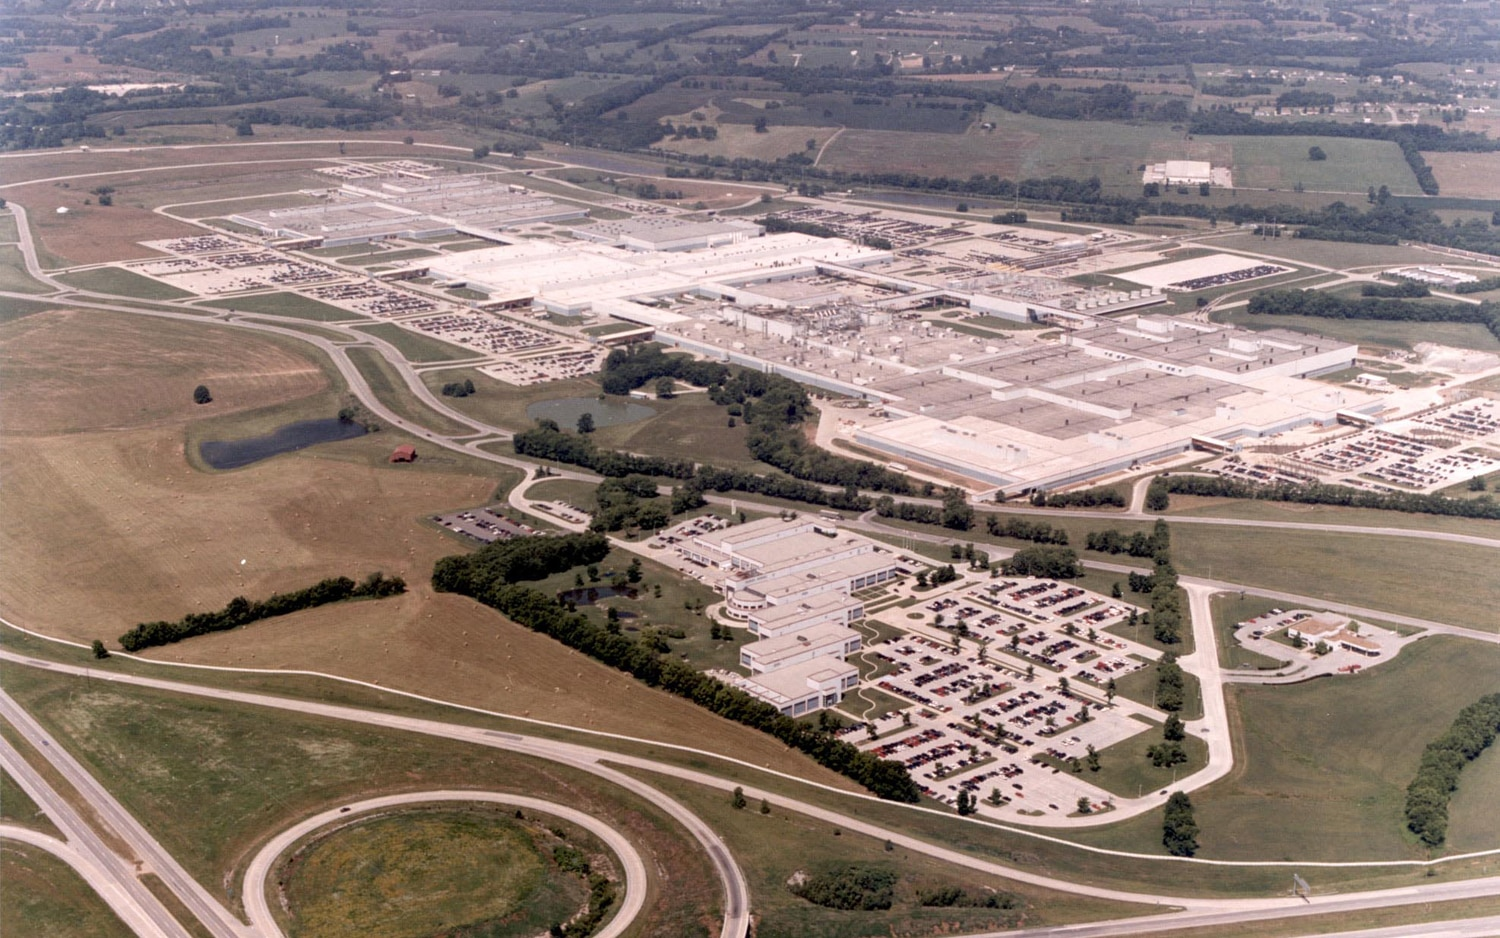 Next Cadillac SRX To Be Built In Former Saturn Factory - Aerial map spring hill road and us hwy 19 1990